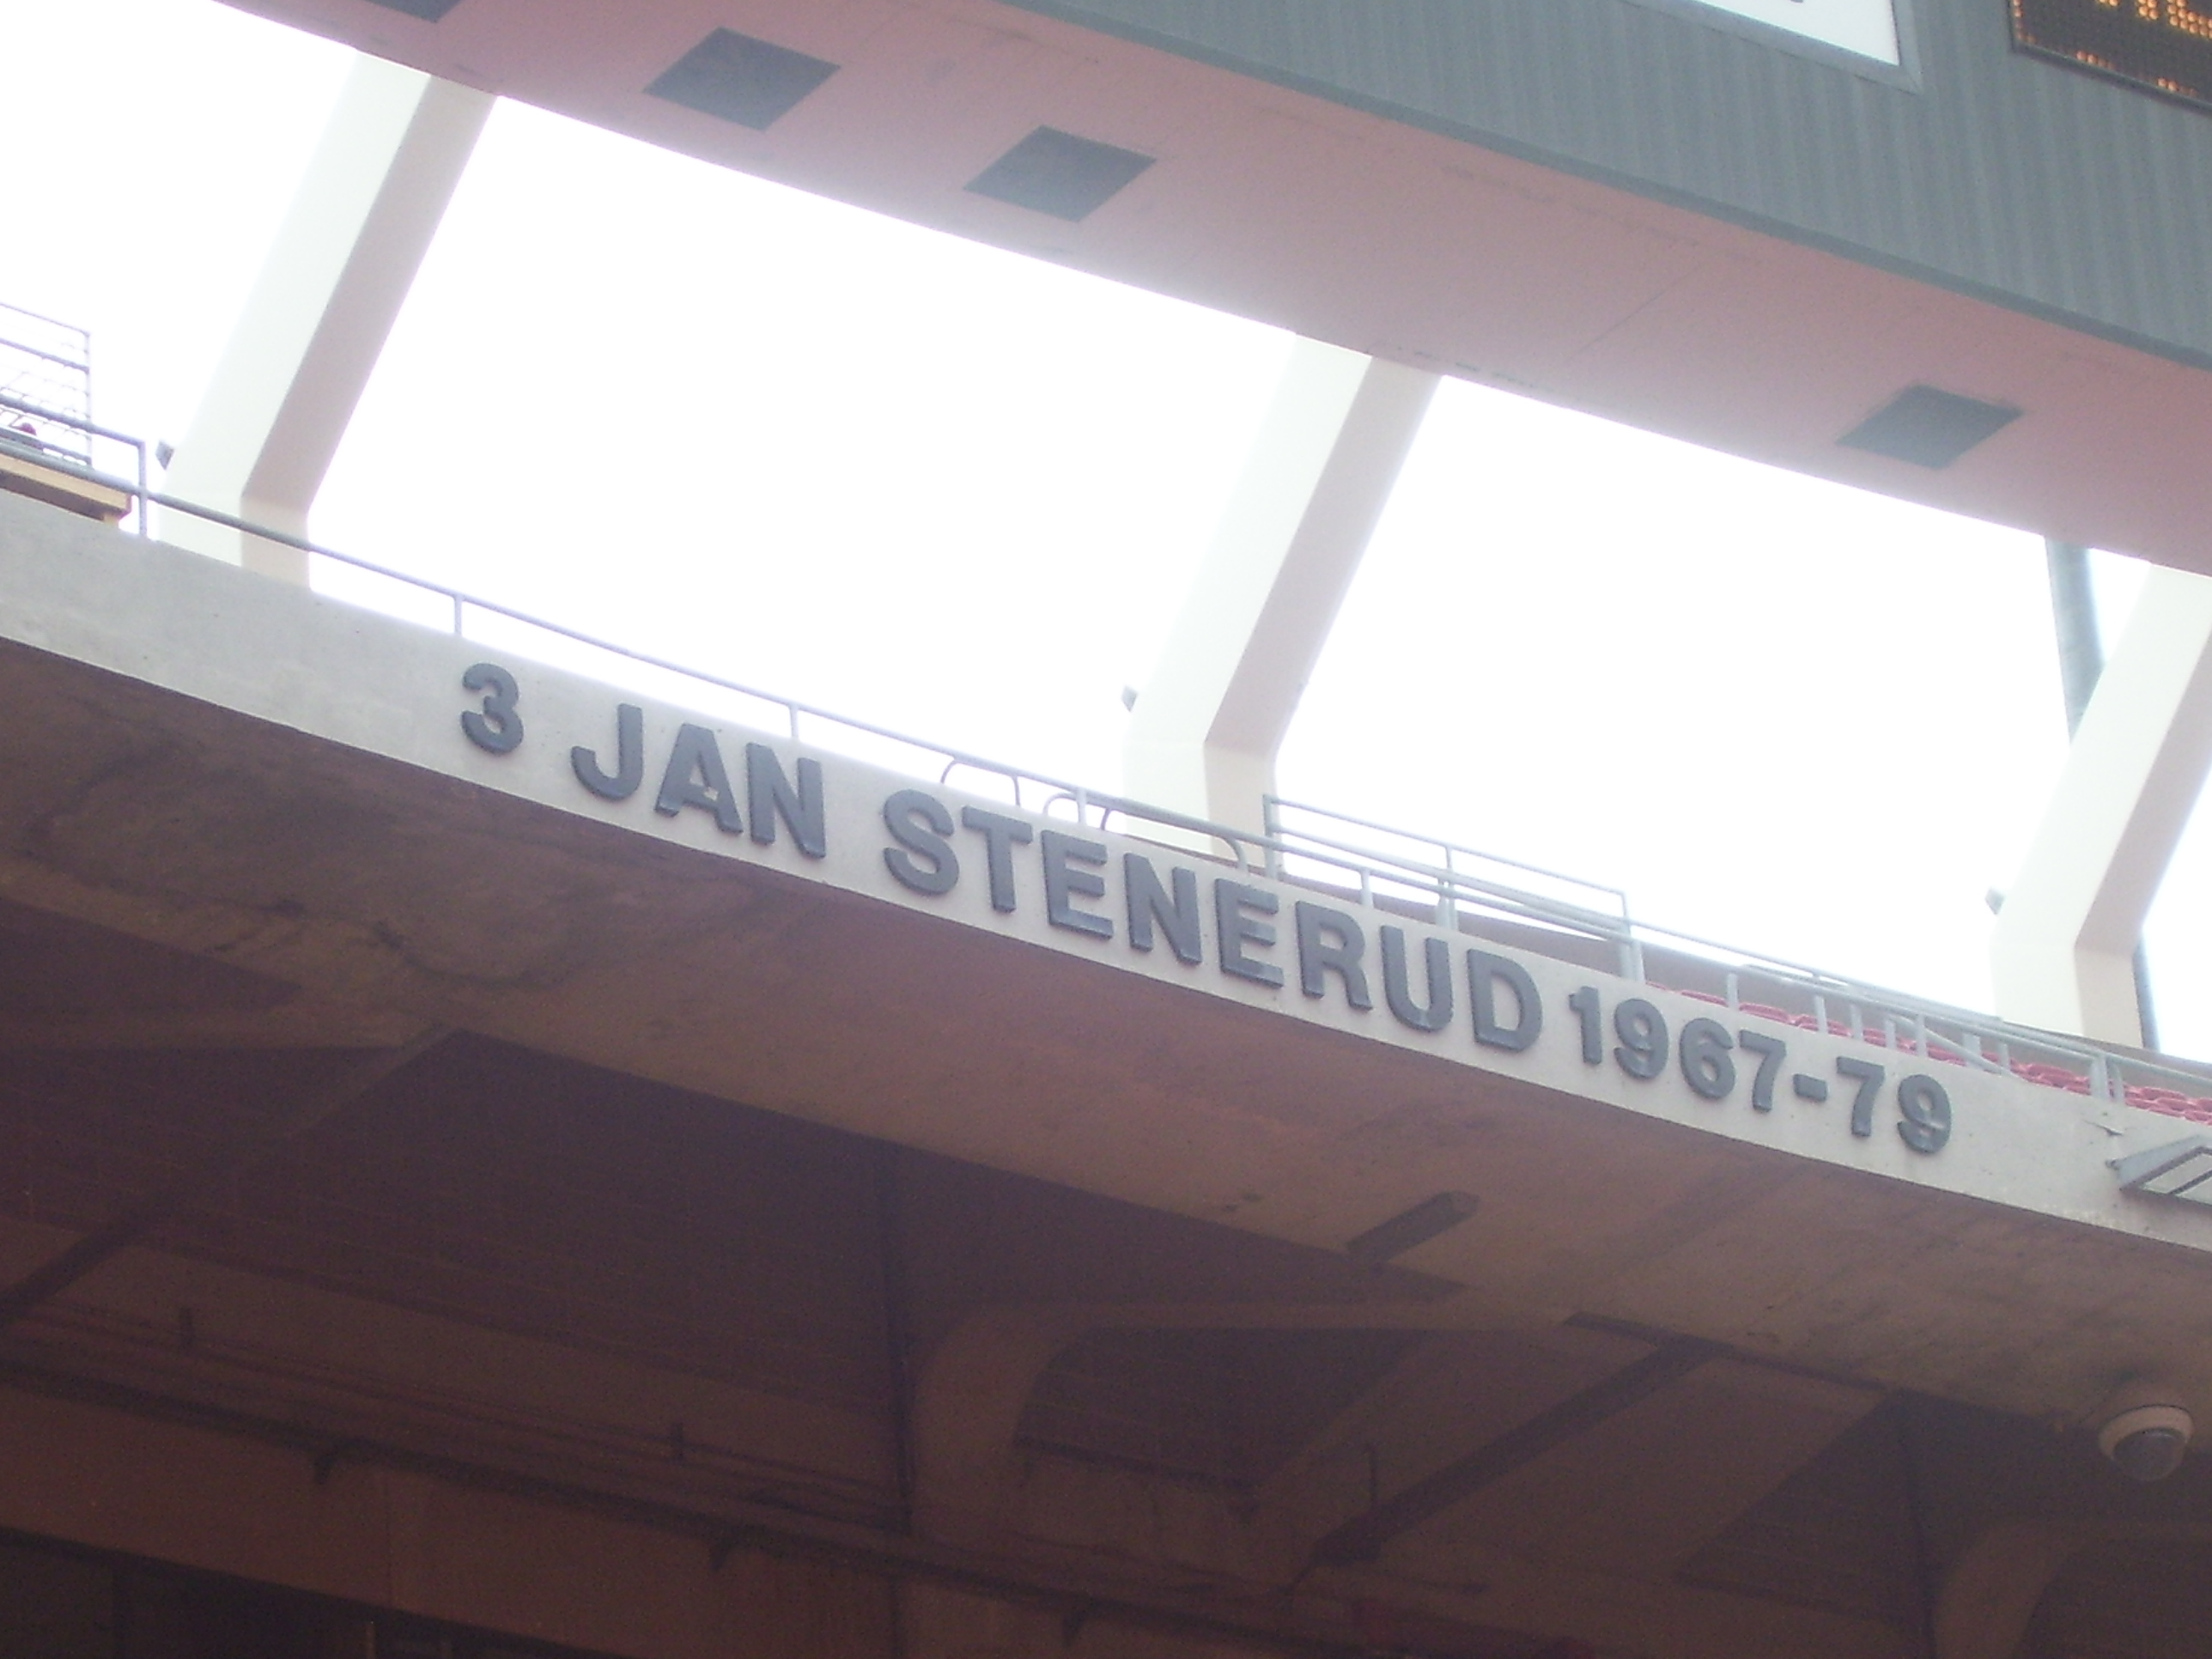 Jan Stenerud's name on the ring of honor at Arrowhead Stadium. Photo taken on June 7, 2008.